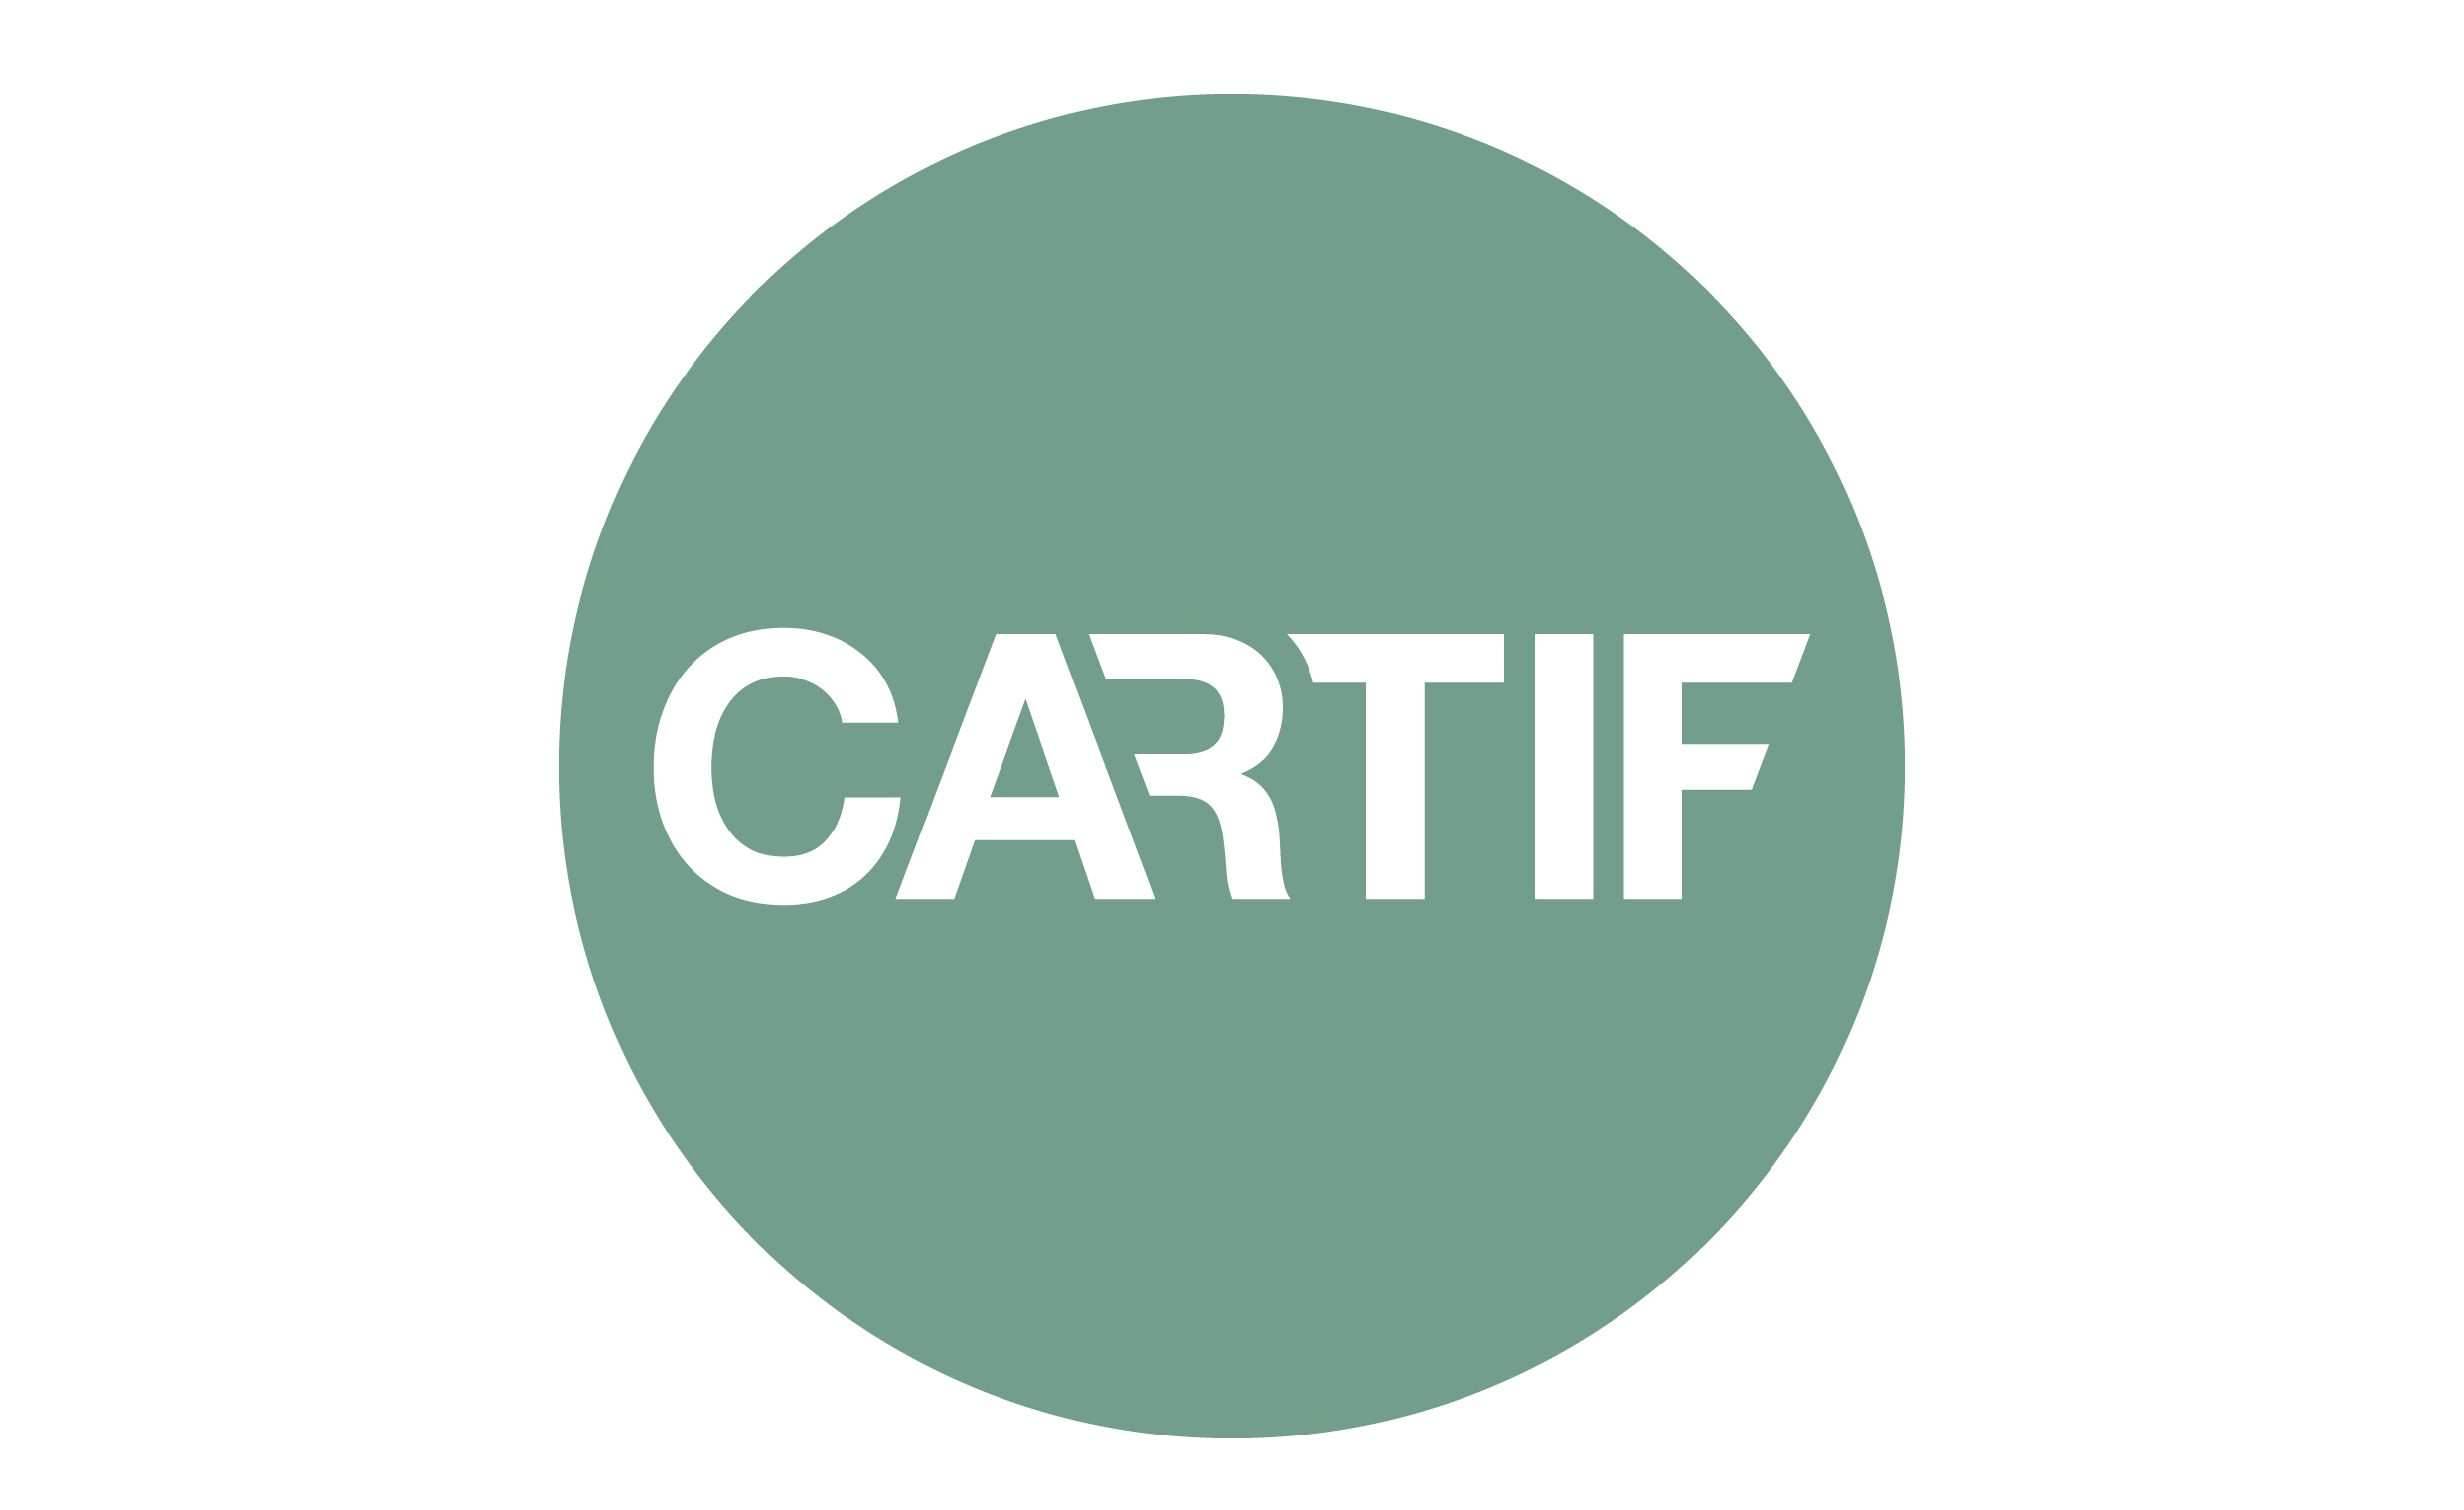 Logotipo de Cartif